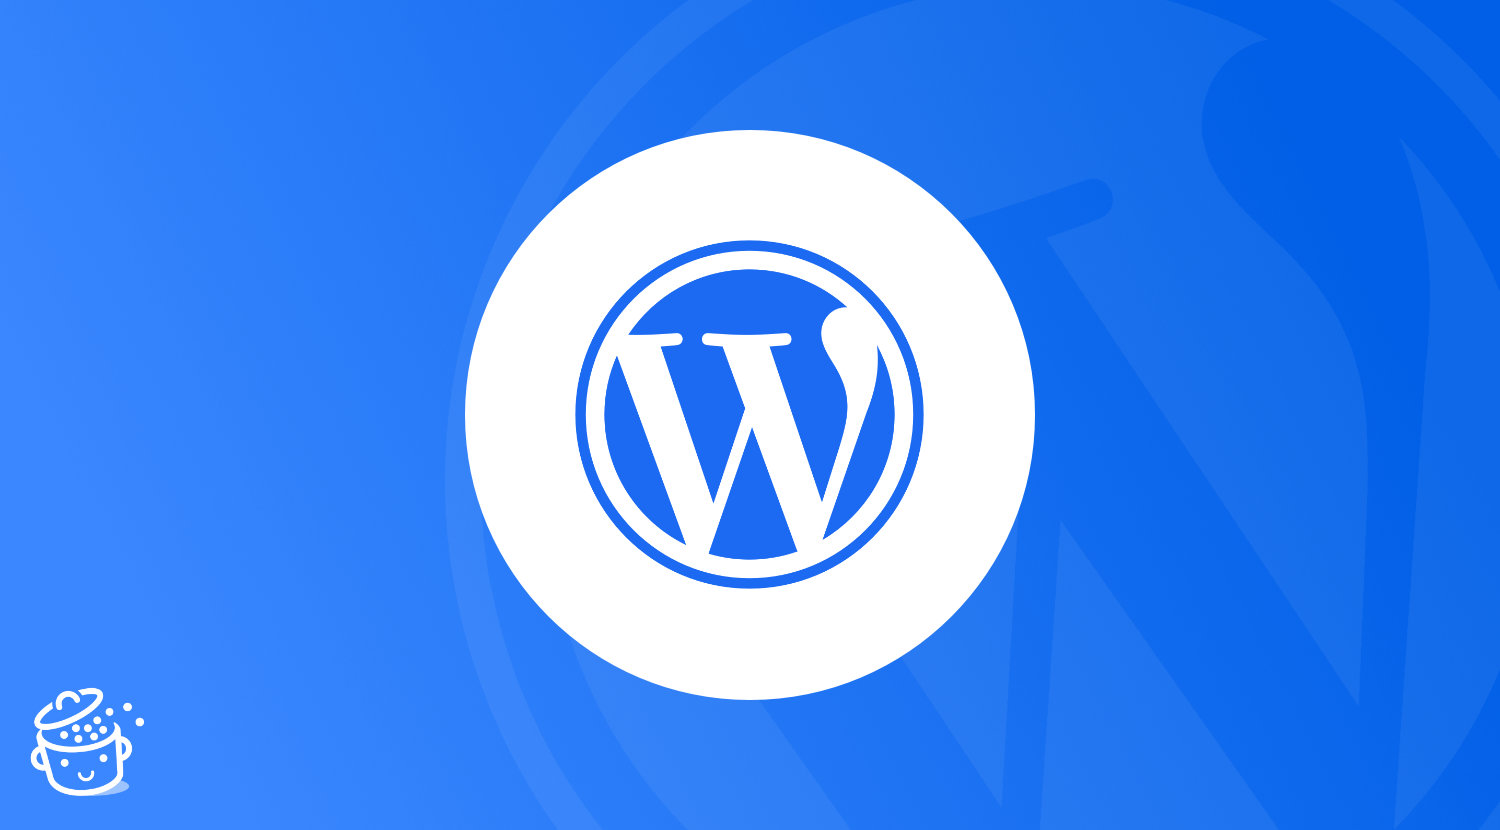 Comment choisir entre WordPress.org et WordPress.com